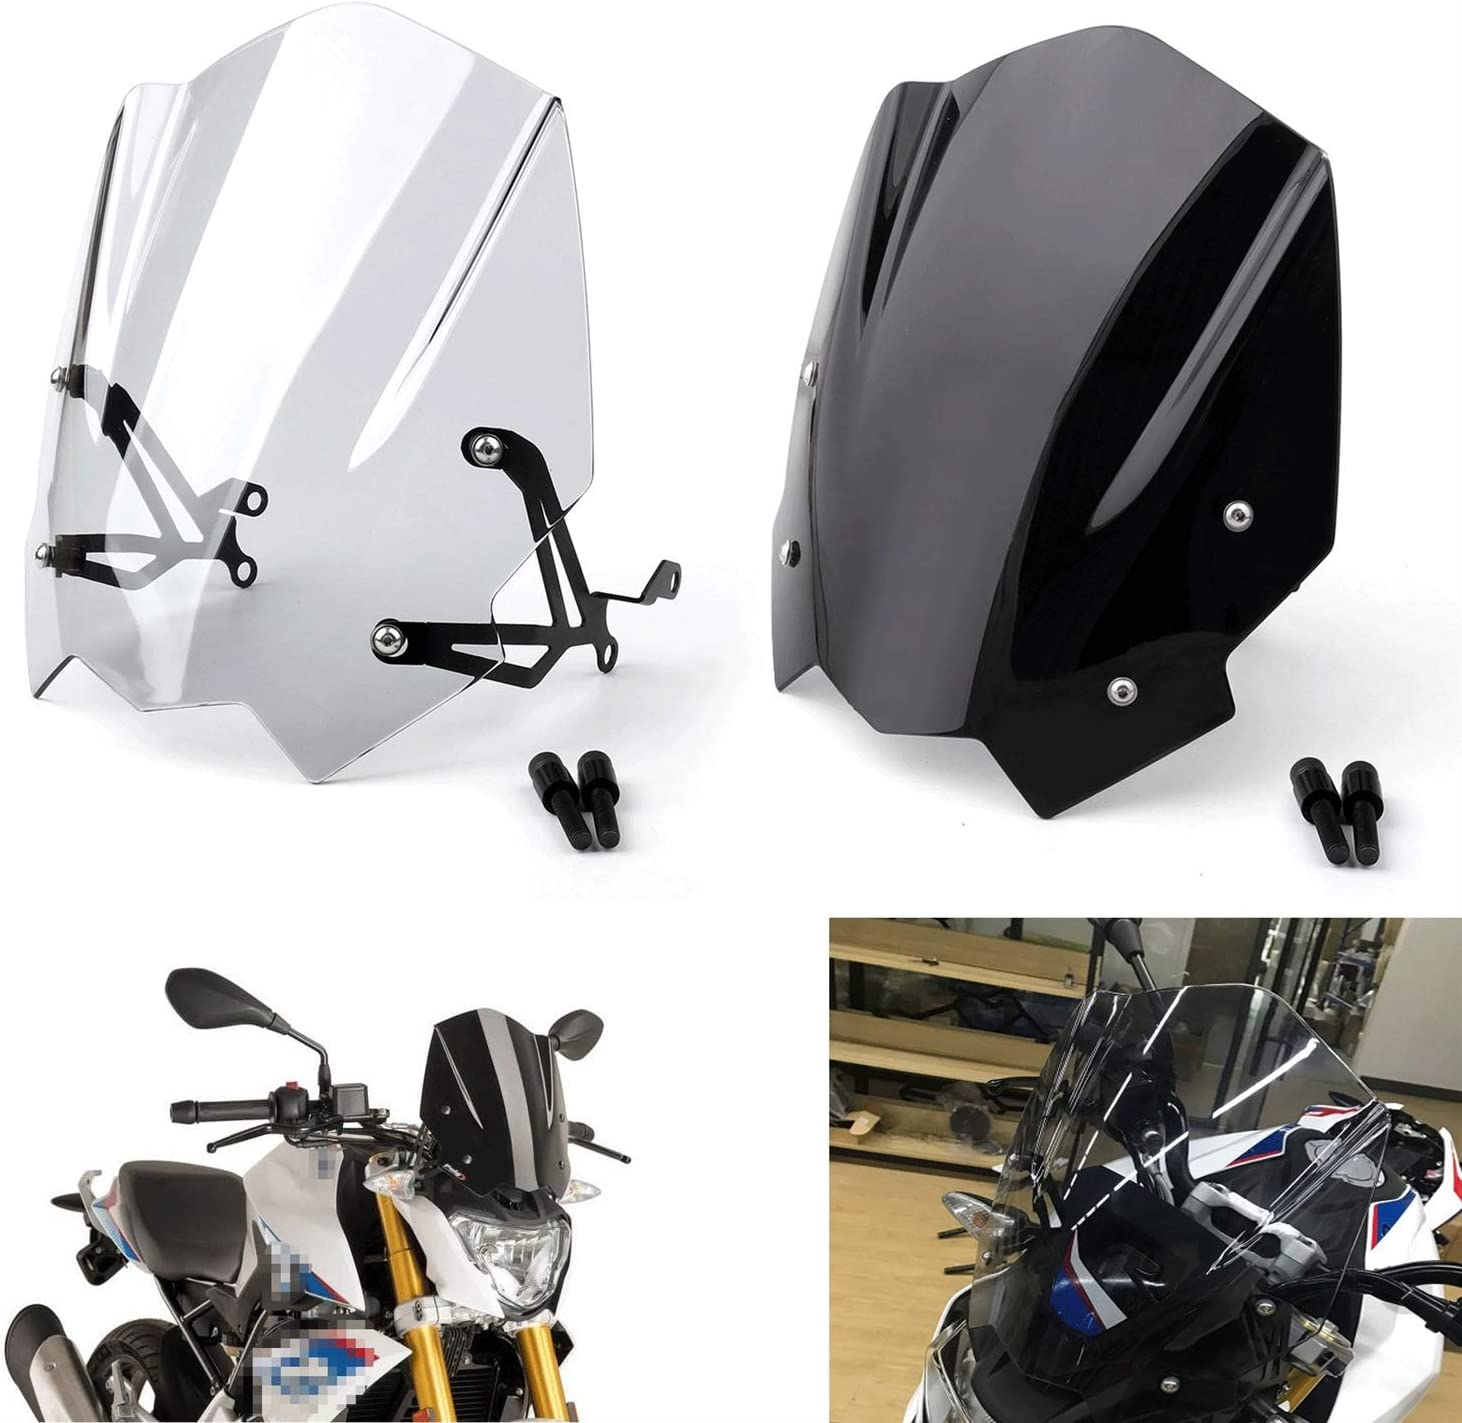 Tall Fairing Daily bargain sale Soldering Fit for G310R Windscreen with Windshield 2017-2018